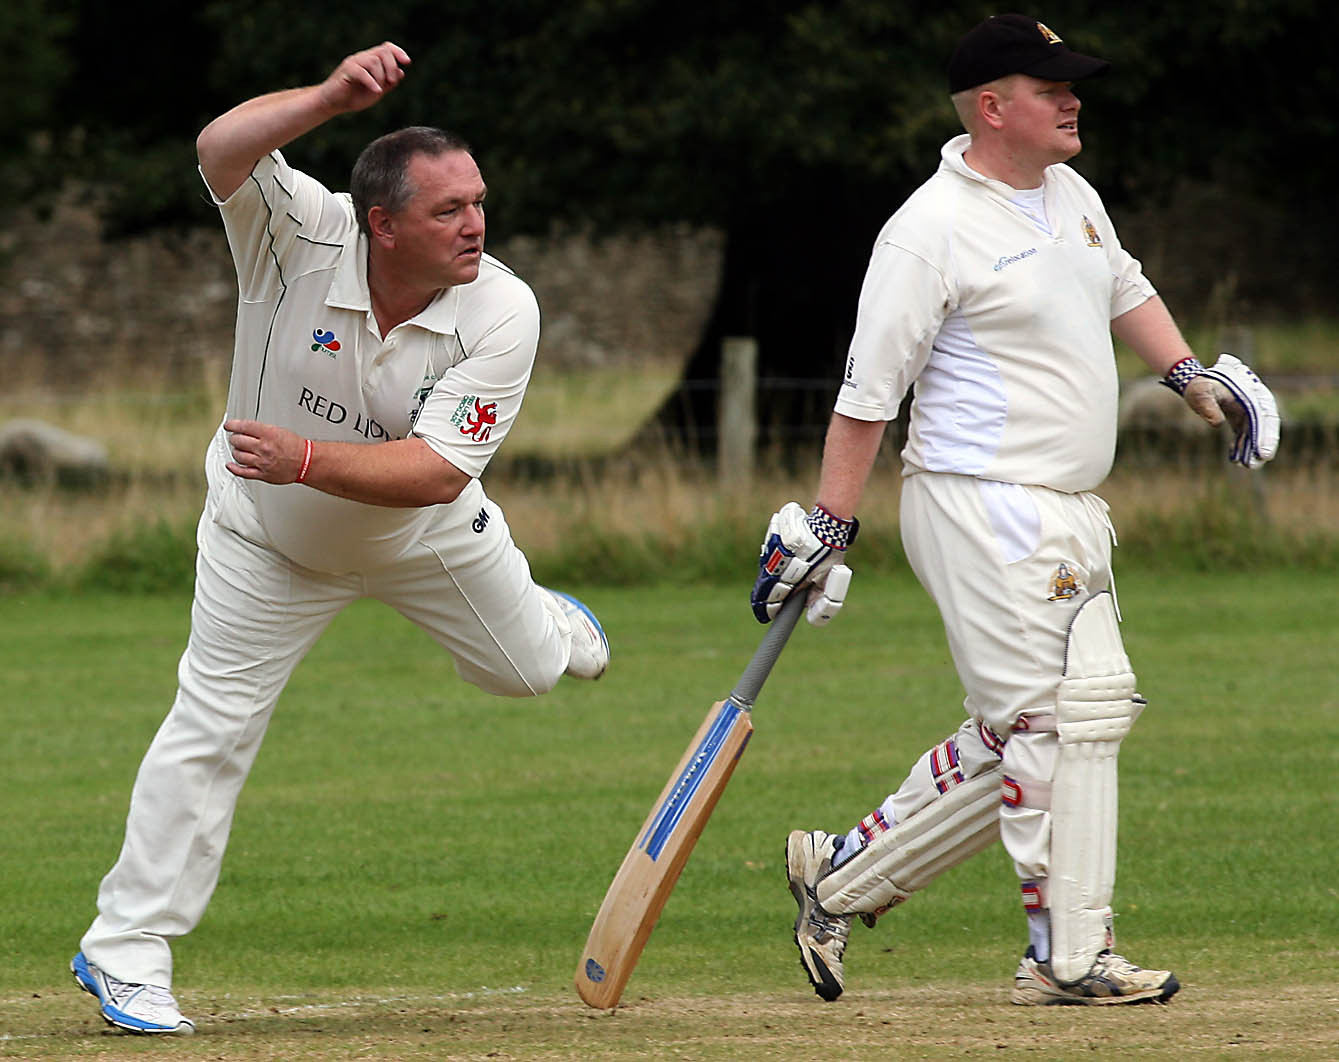 CRICKET: Chedworth tighten grip on CDCA title